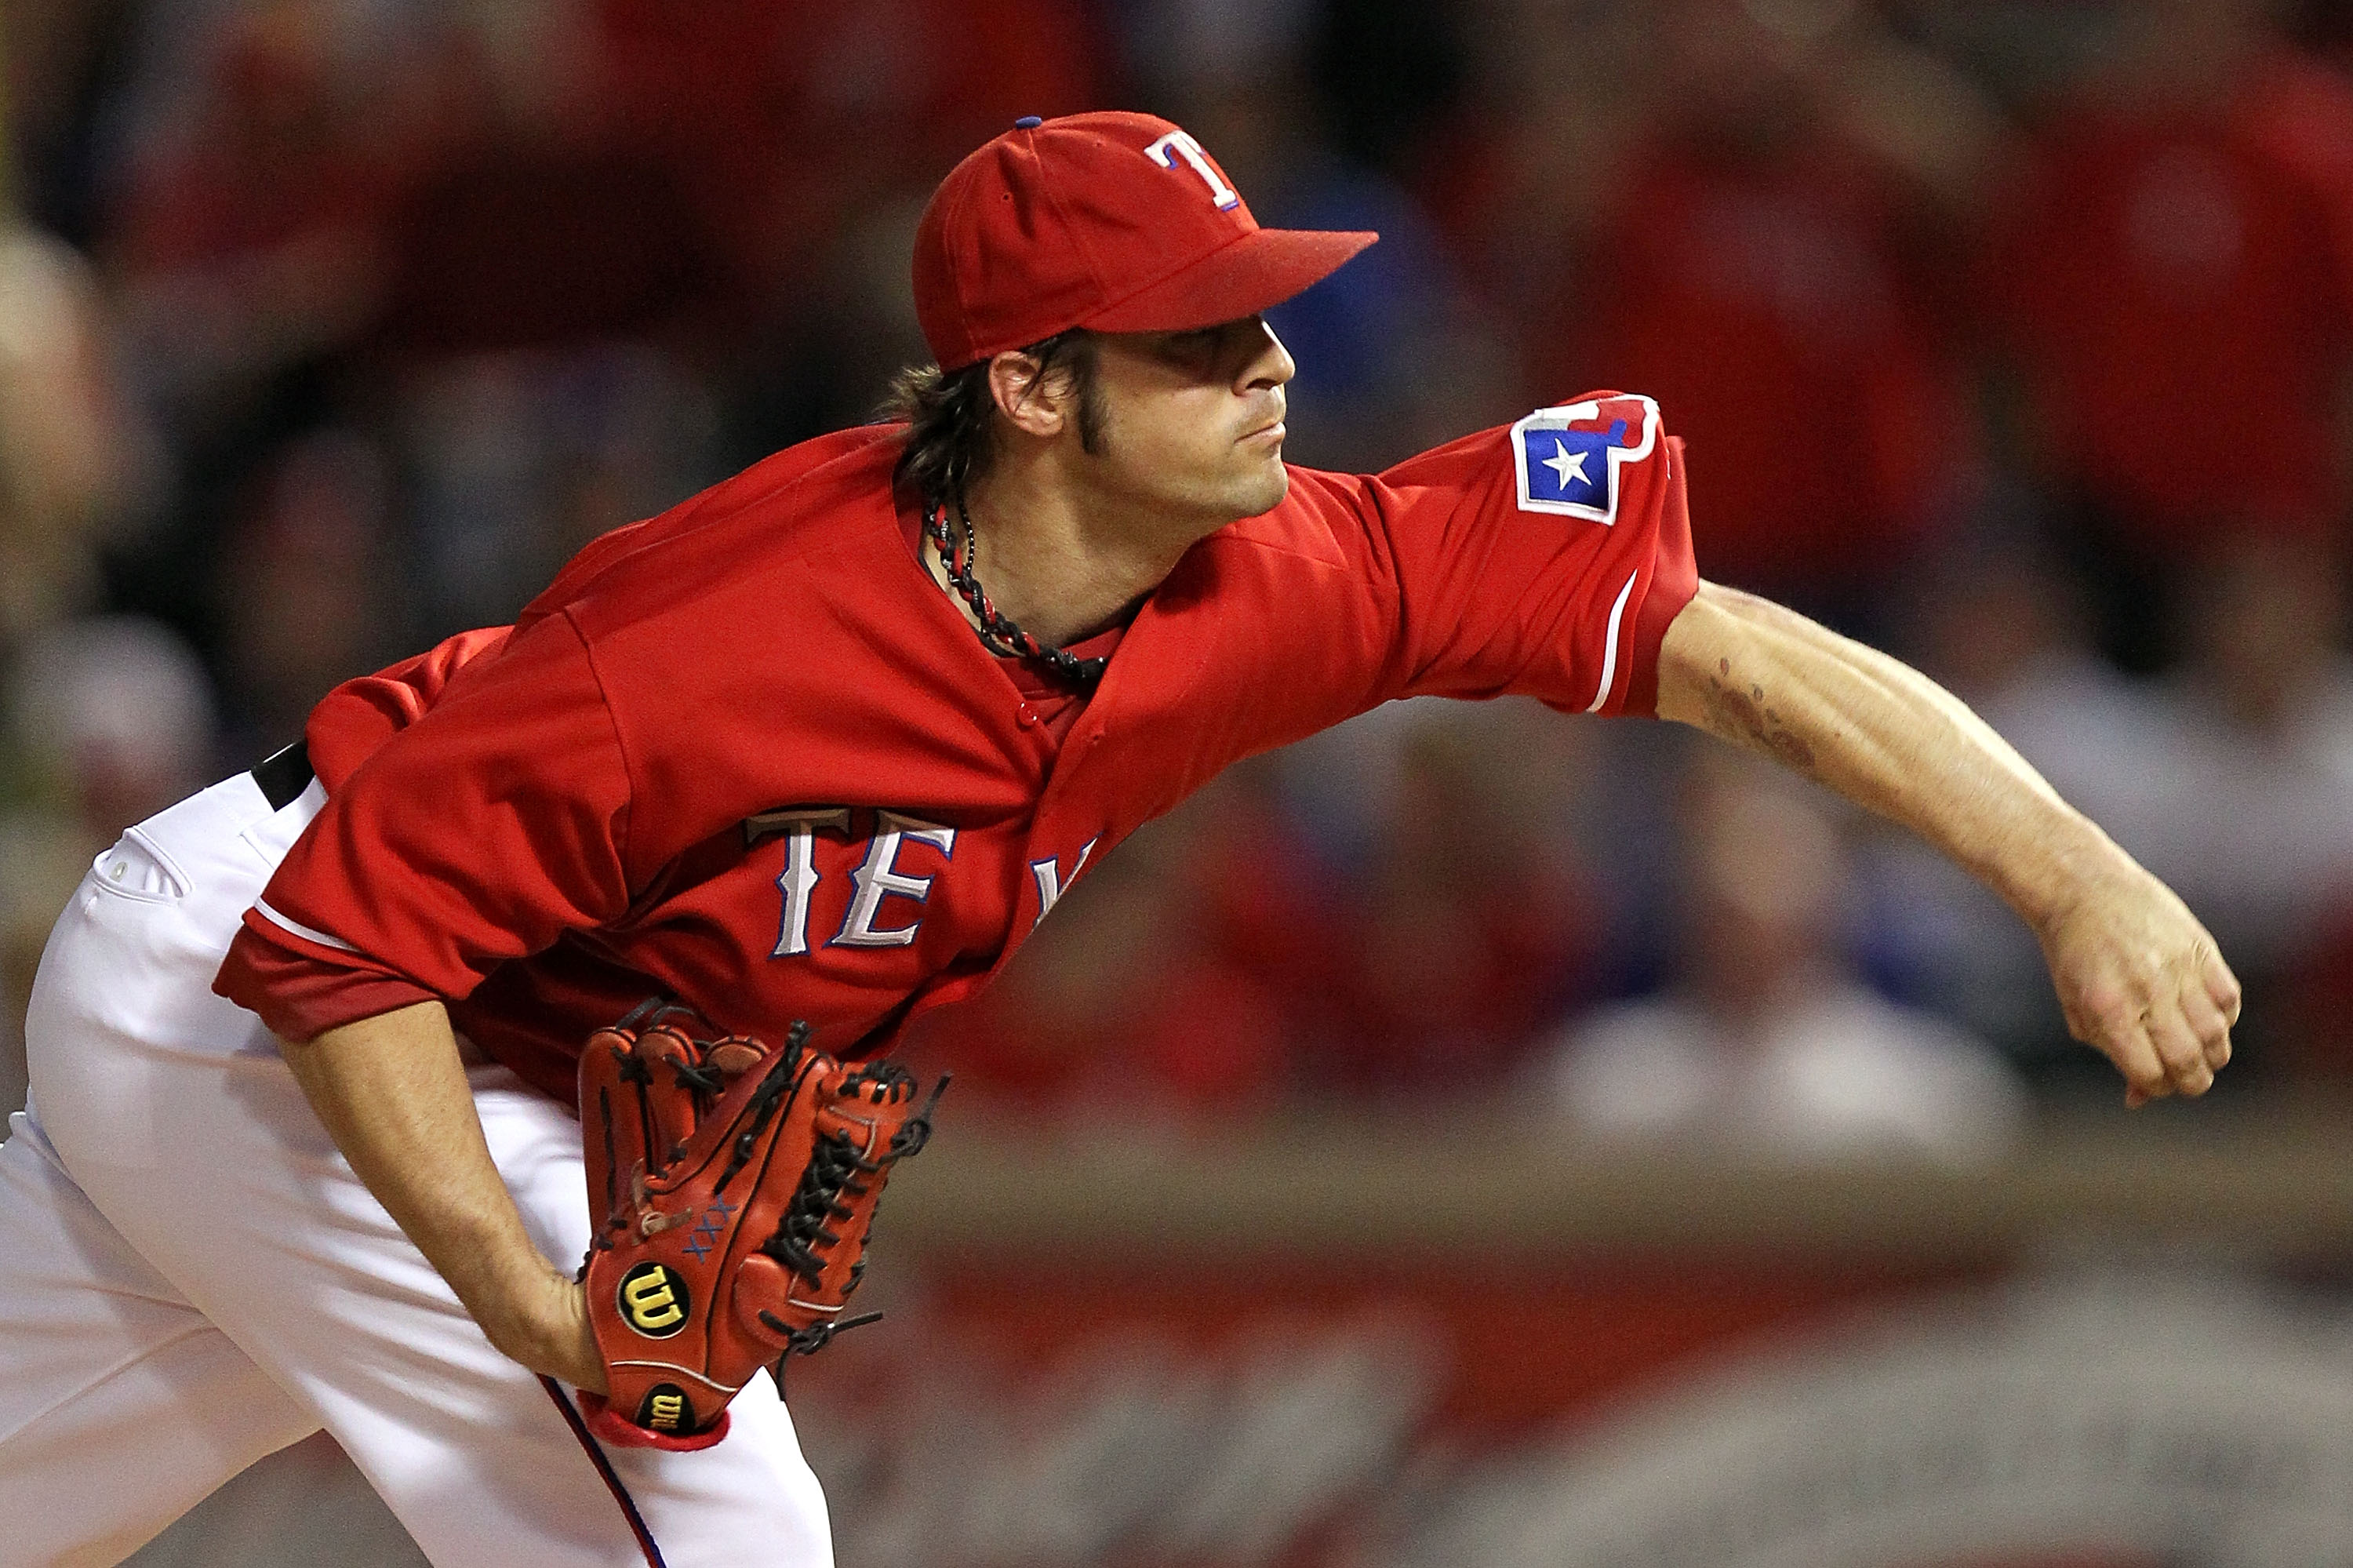 ARLINGTON, TX - OCTOBER 15:  Starting pitcher C.J. Wilson #36 of the Texas Rangers pitches against the New York Yankees in Game One of the ALCS during the 2010 MLB Playoffs at Rangers Ballpark in Arlington on October 15, 2010 in Arlington, Texas. The Yank